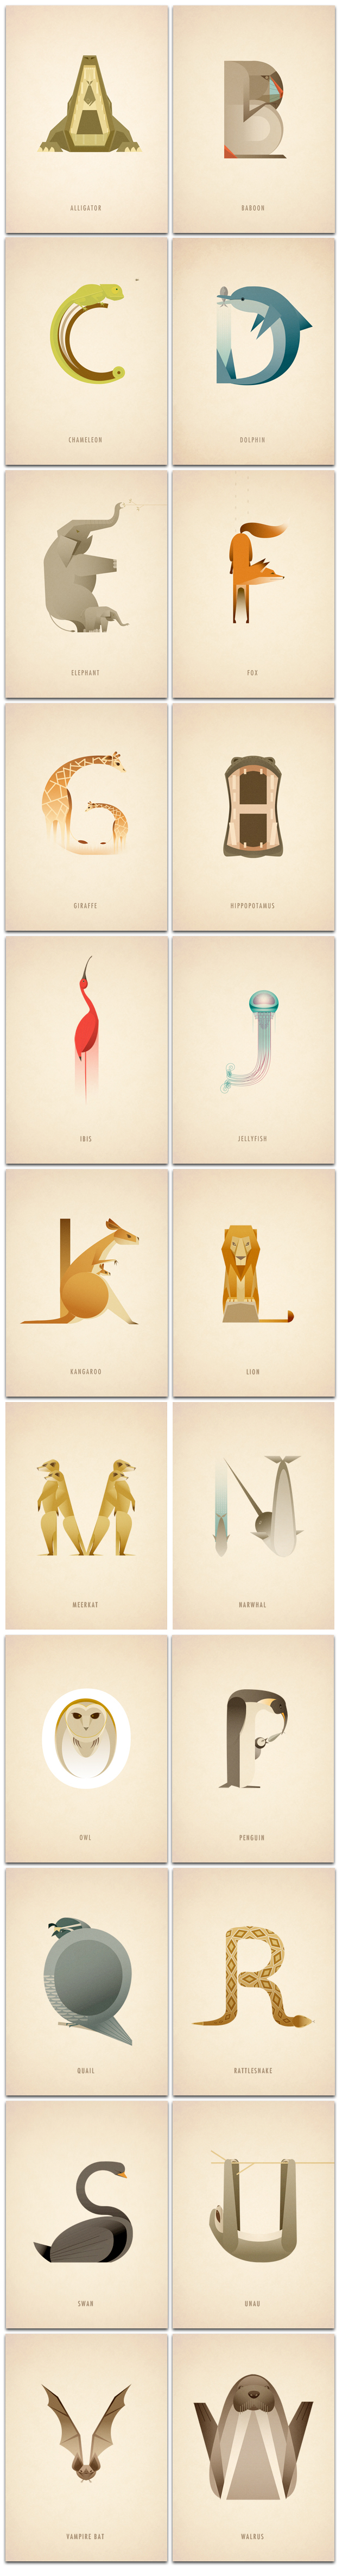 Animal Alphabet | Marcus Reed